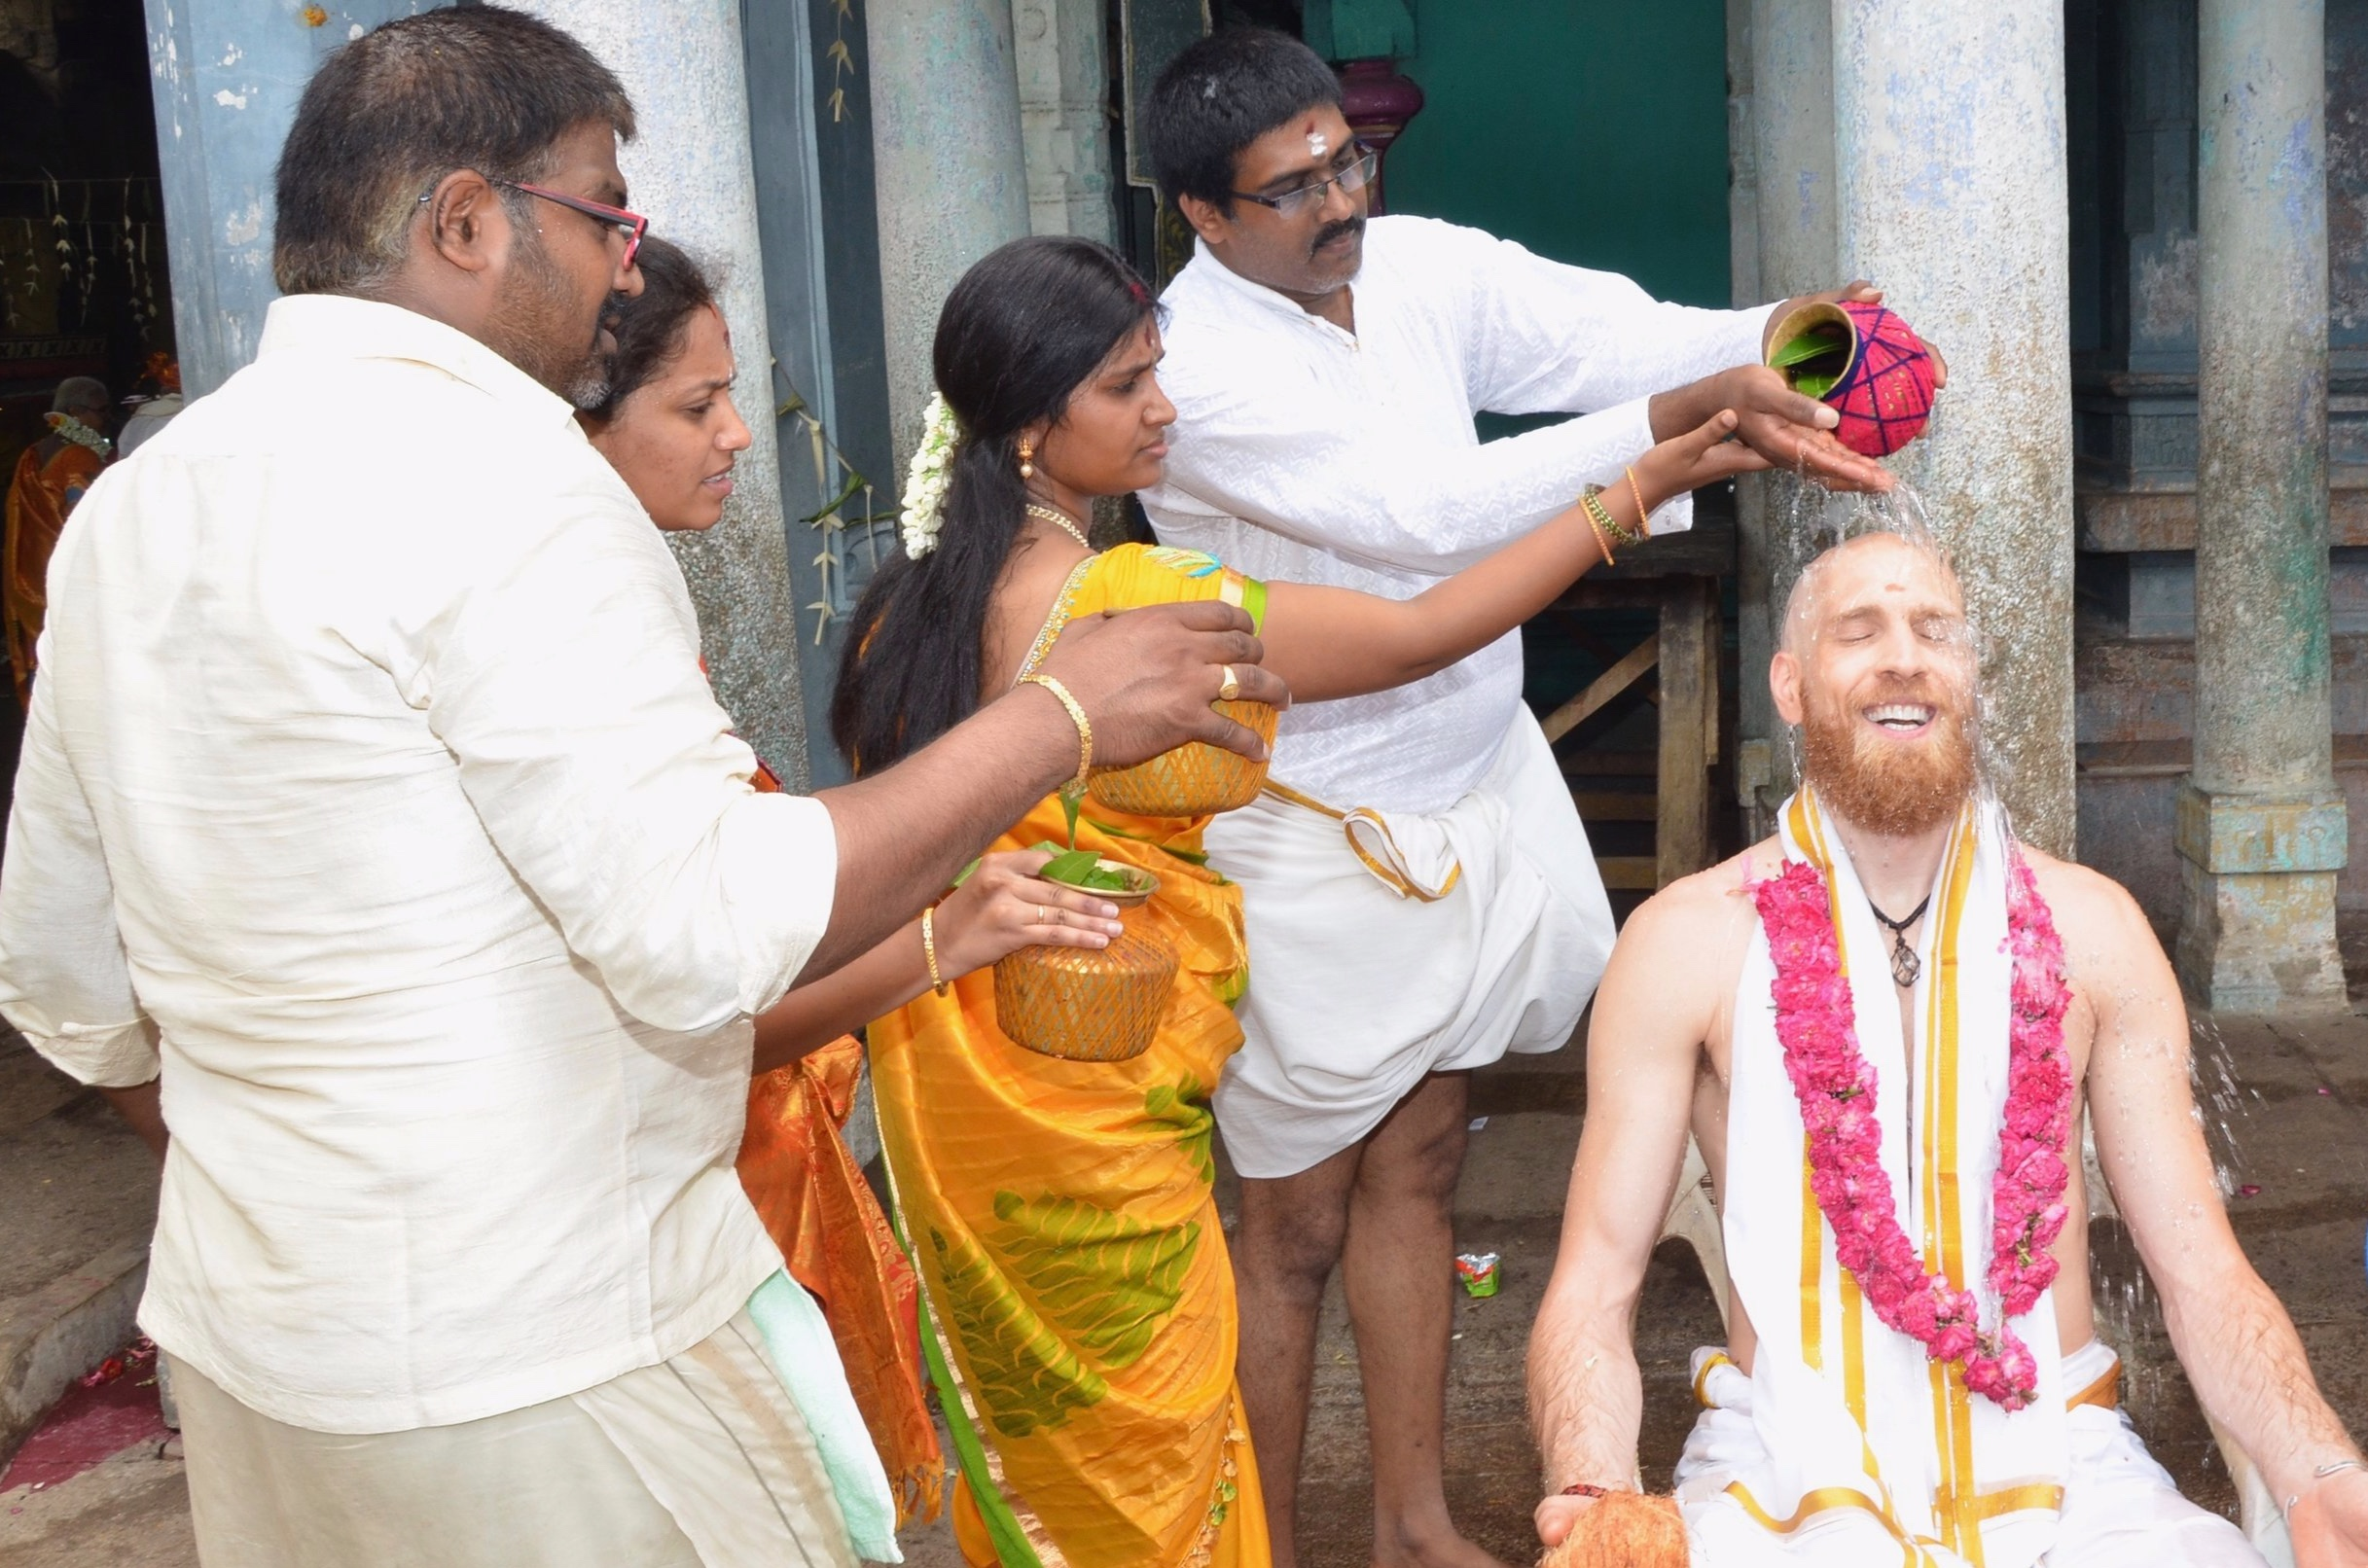 Bathing in love and devotion as fellow pilgrims seal the blessing power of the puja with water offerings (Thirukkadaiyur, Tamil Nadu)  Photo credit: unknown